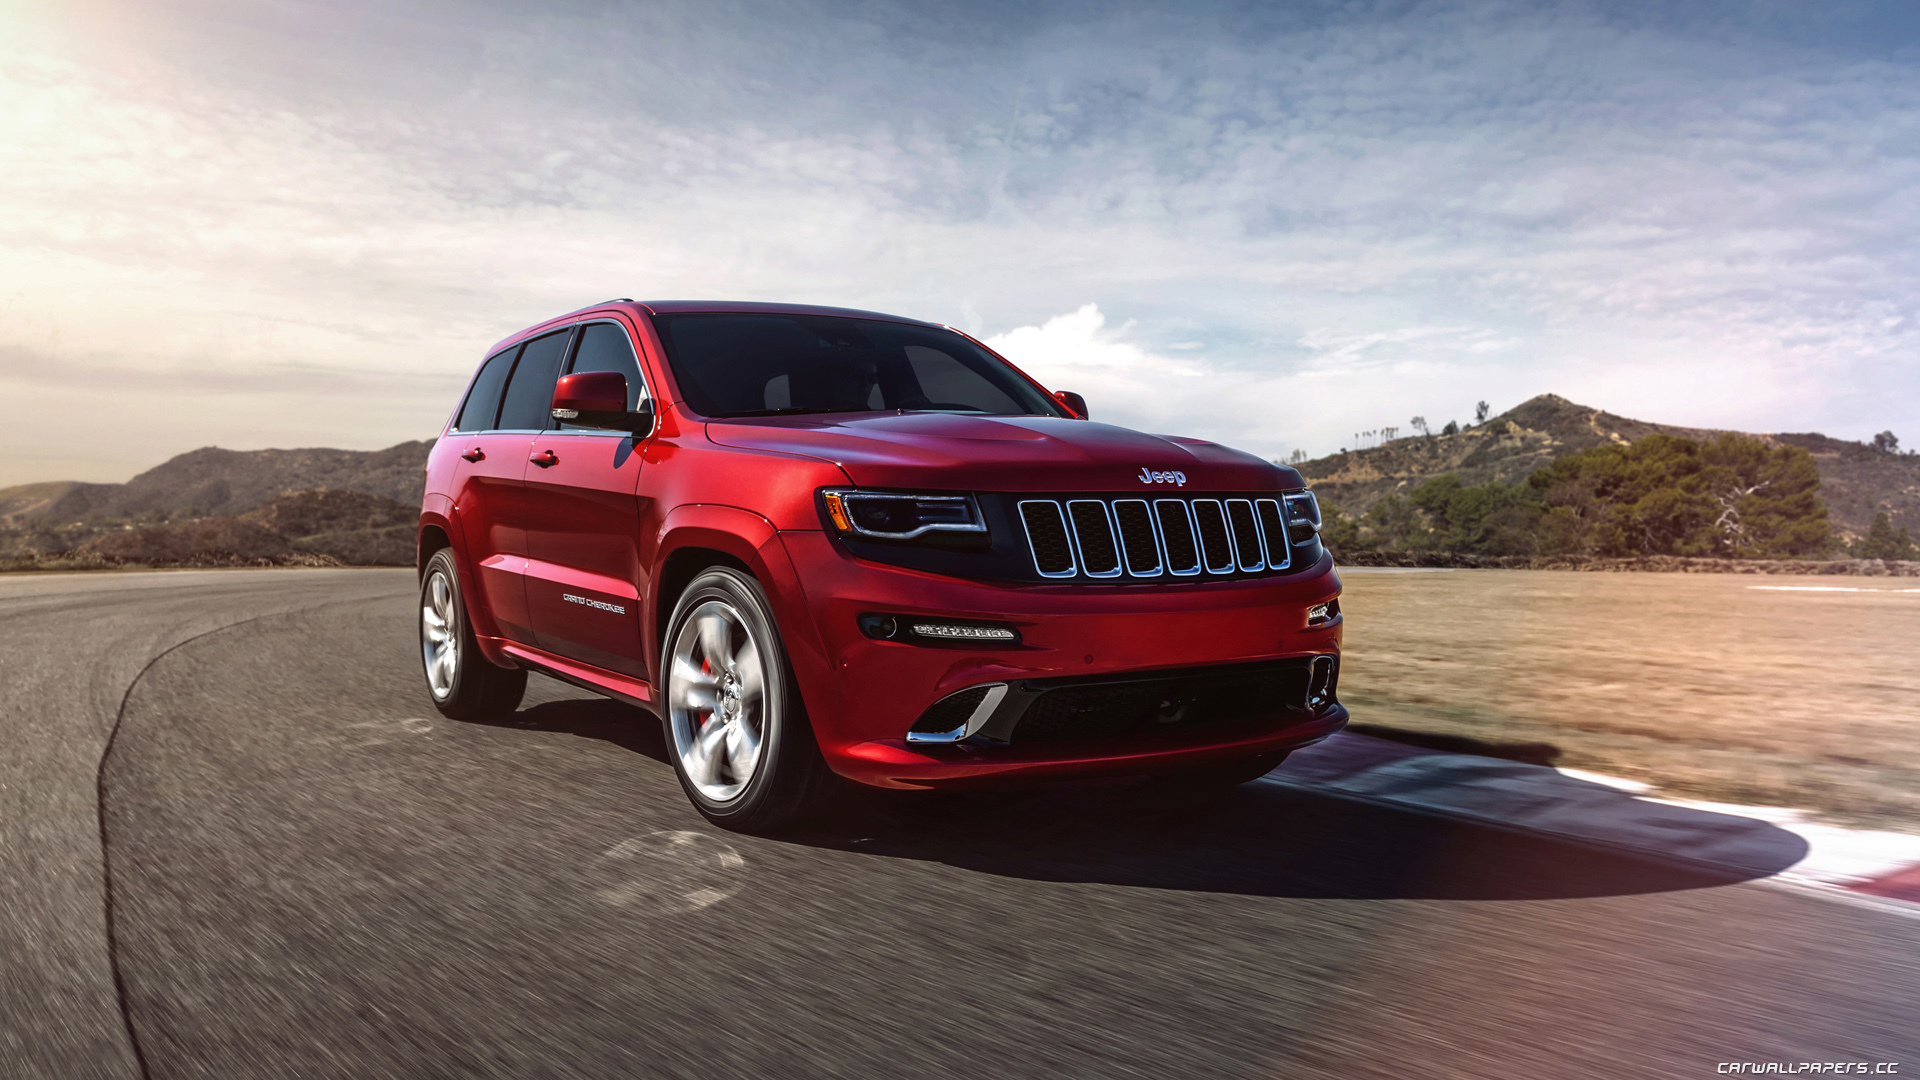 Hqdefault further Jeep Grand Cherokee Wallpaper For Laptop as well Hqdefault moreover S L in addition Jeep Bgrand Bcherokee Btrackhawk Bnew Byork B. on jeep grand cherokee srt